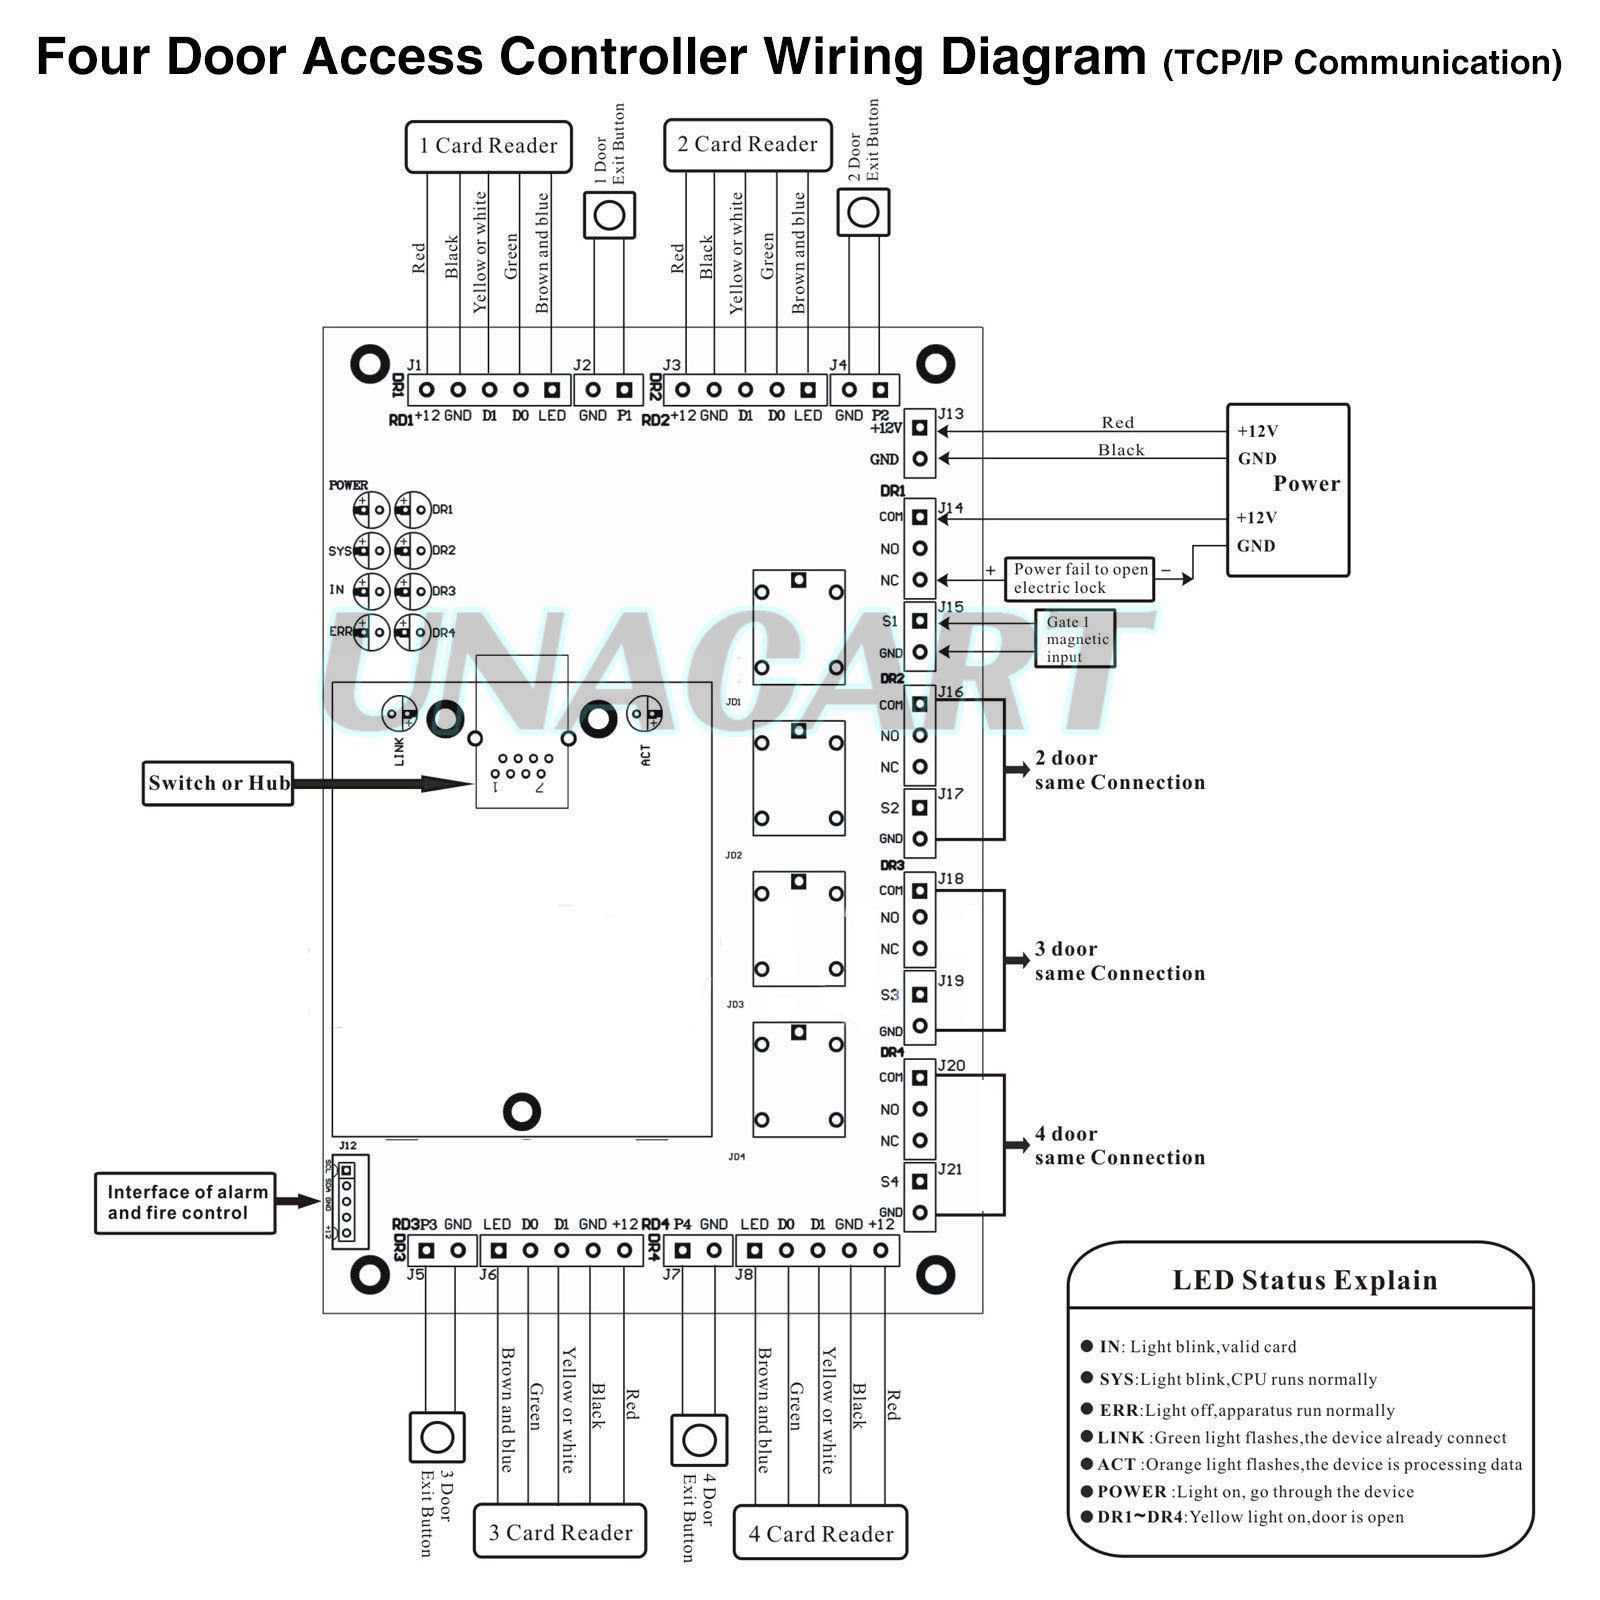 hid rp40 wiring diagram Download-Tcp ip Wiegand 26 Network Entry Attendance Access Panel Control Board for 4 Door 11-a